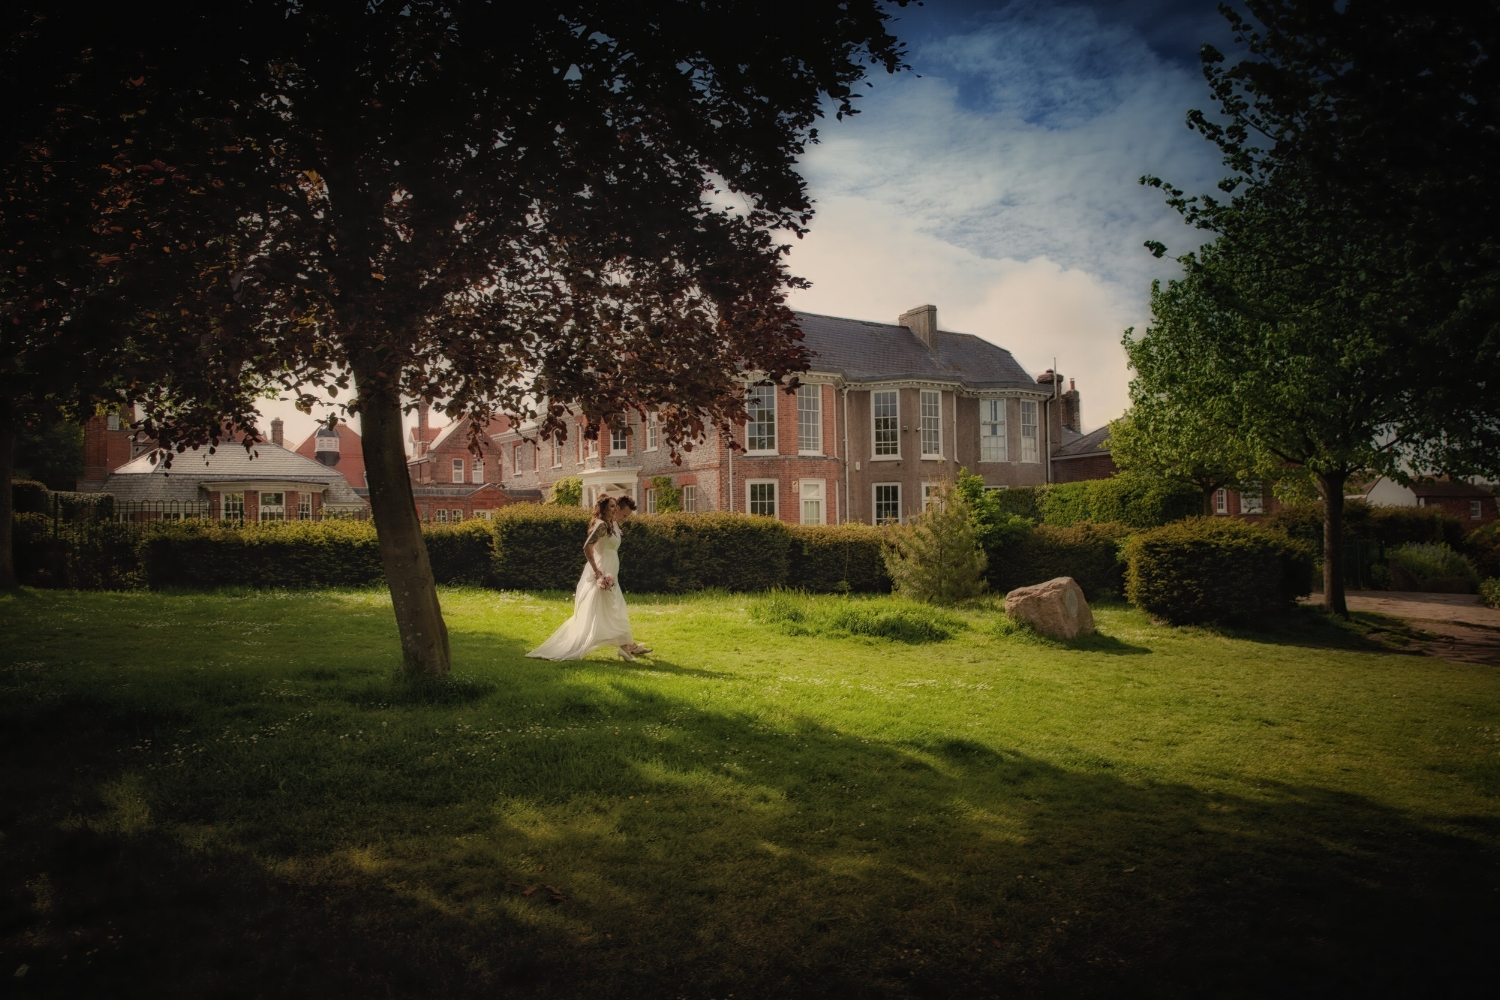 Wayne Hudson, Imagery by hudson, lucria creative, photography, photographer, wedding, bride, Coventry, Warwickshire, Eastbourne